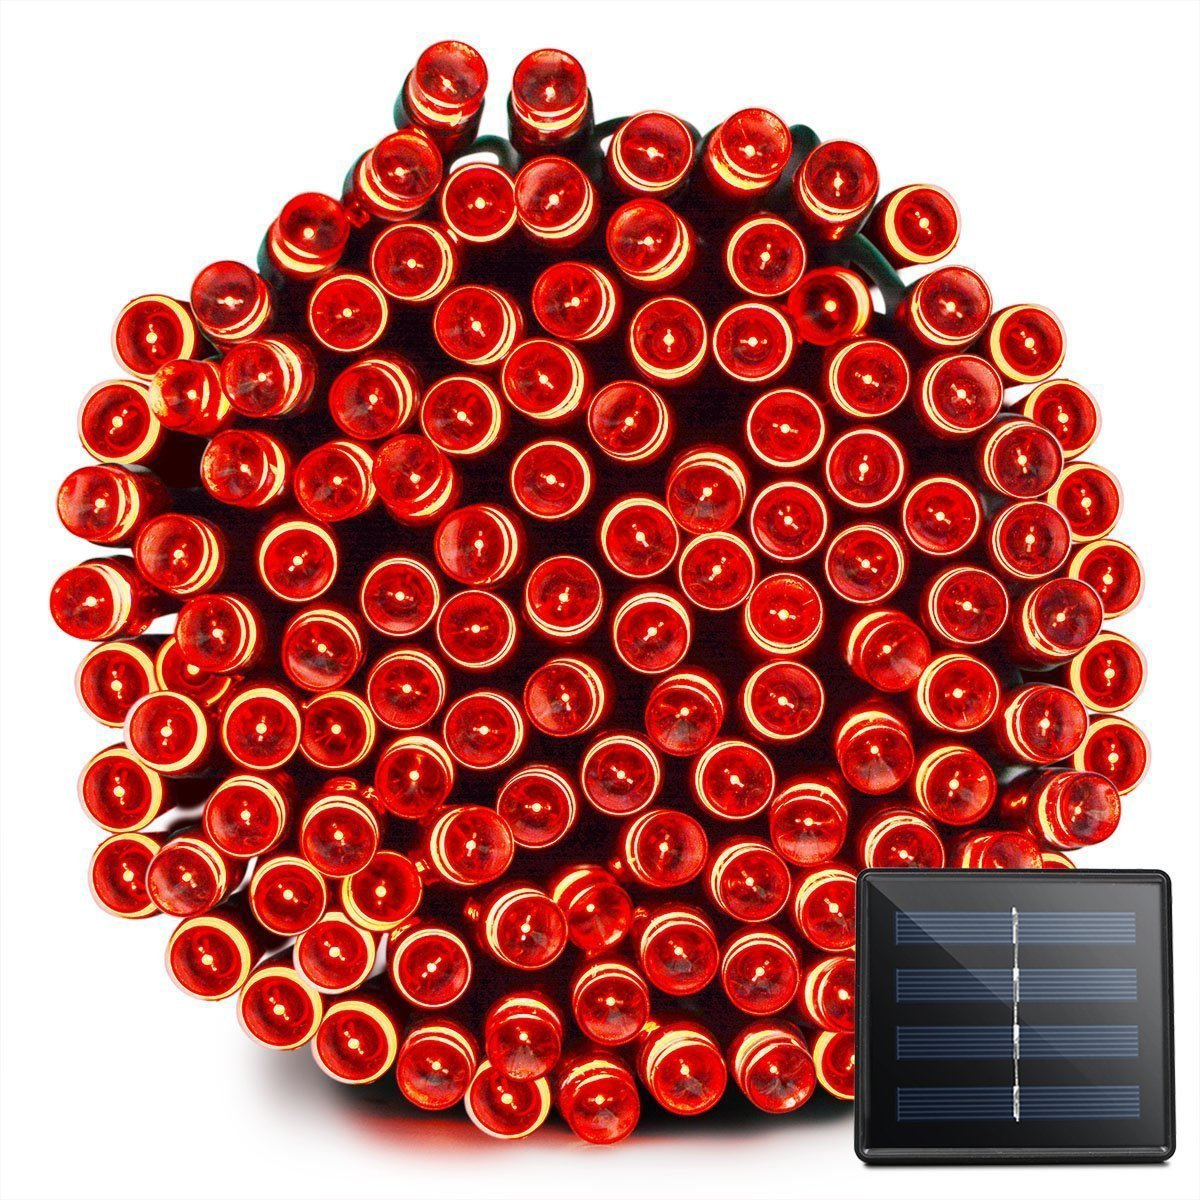 VMANOO Solar Christmas Lights, 72ft 22m 200 LED 8 Modes Solar String Lights for Outdoor, Indoor, Gardens, Homes, Party, Wedding, Xmas Tree Decorations, Waterproof (Red)